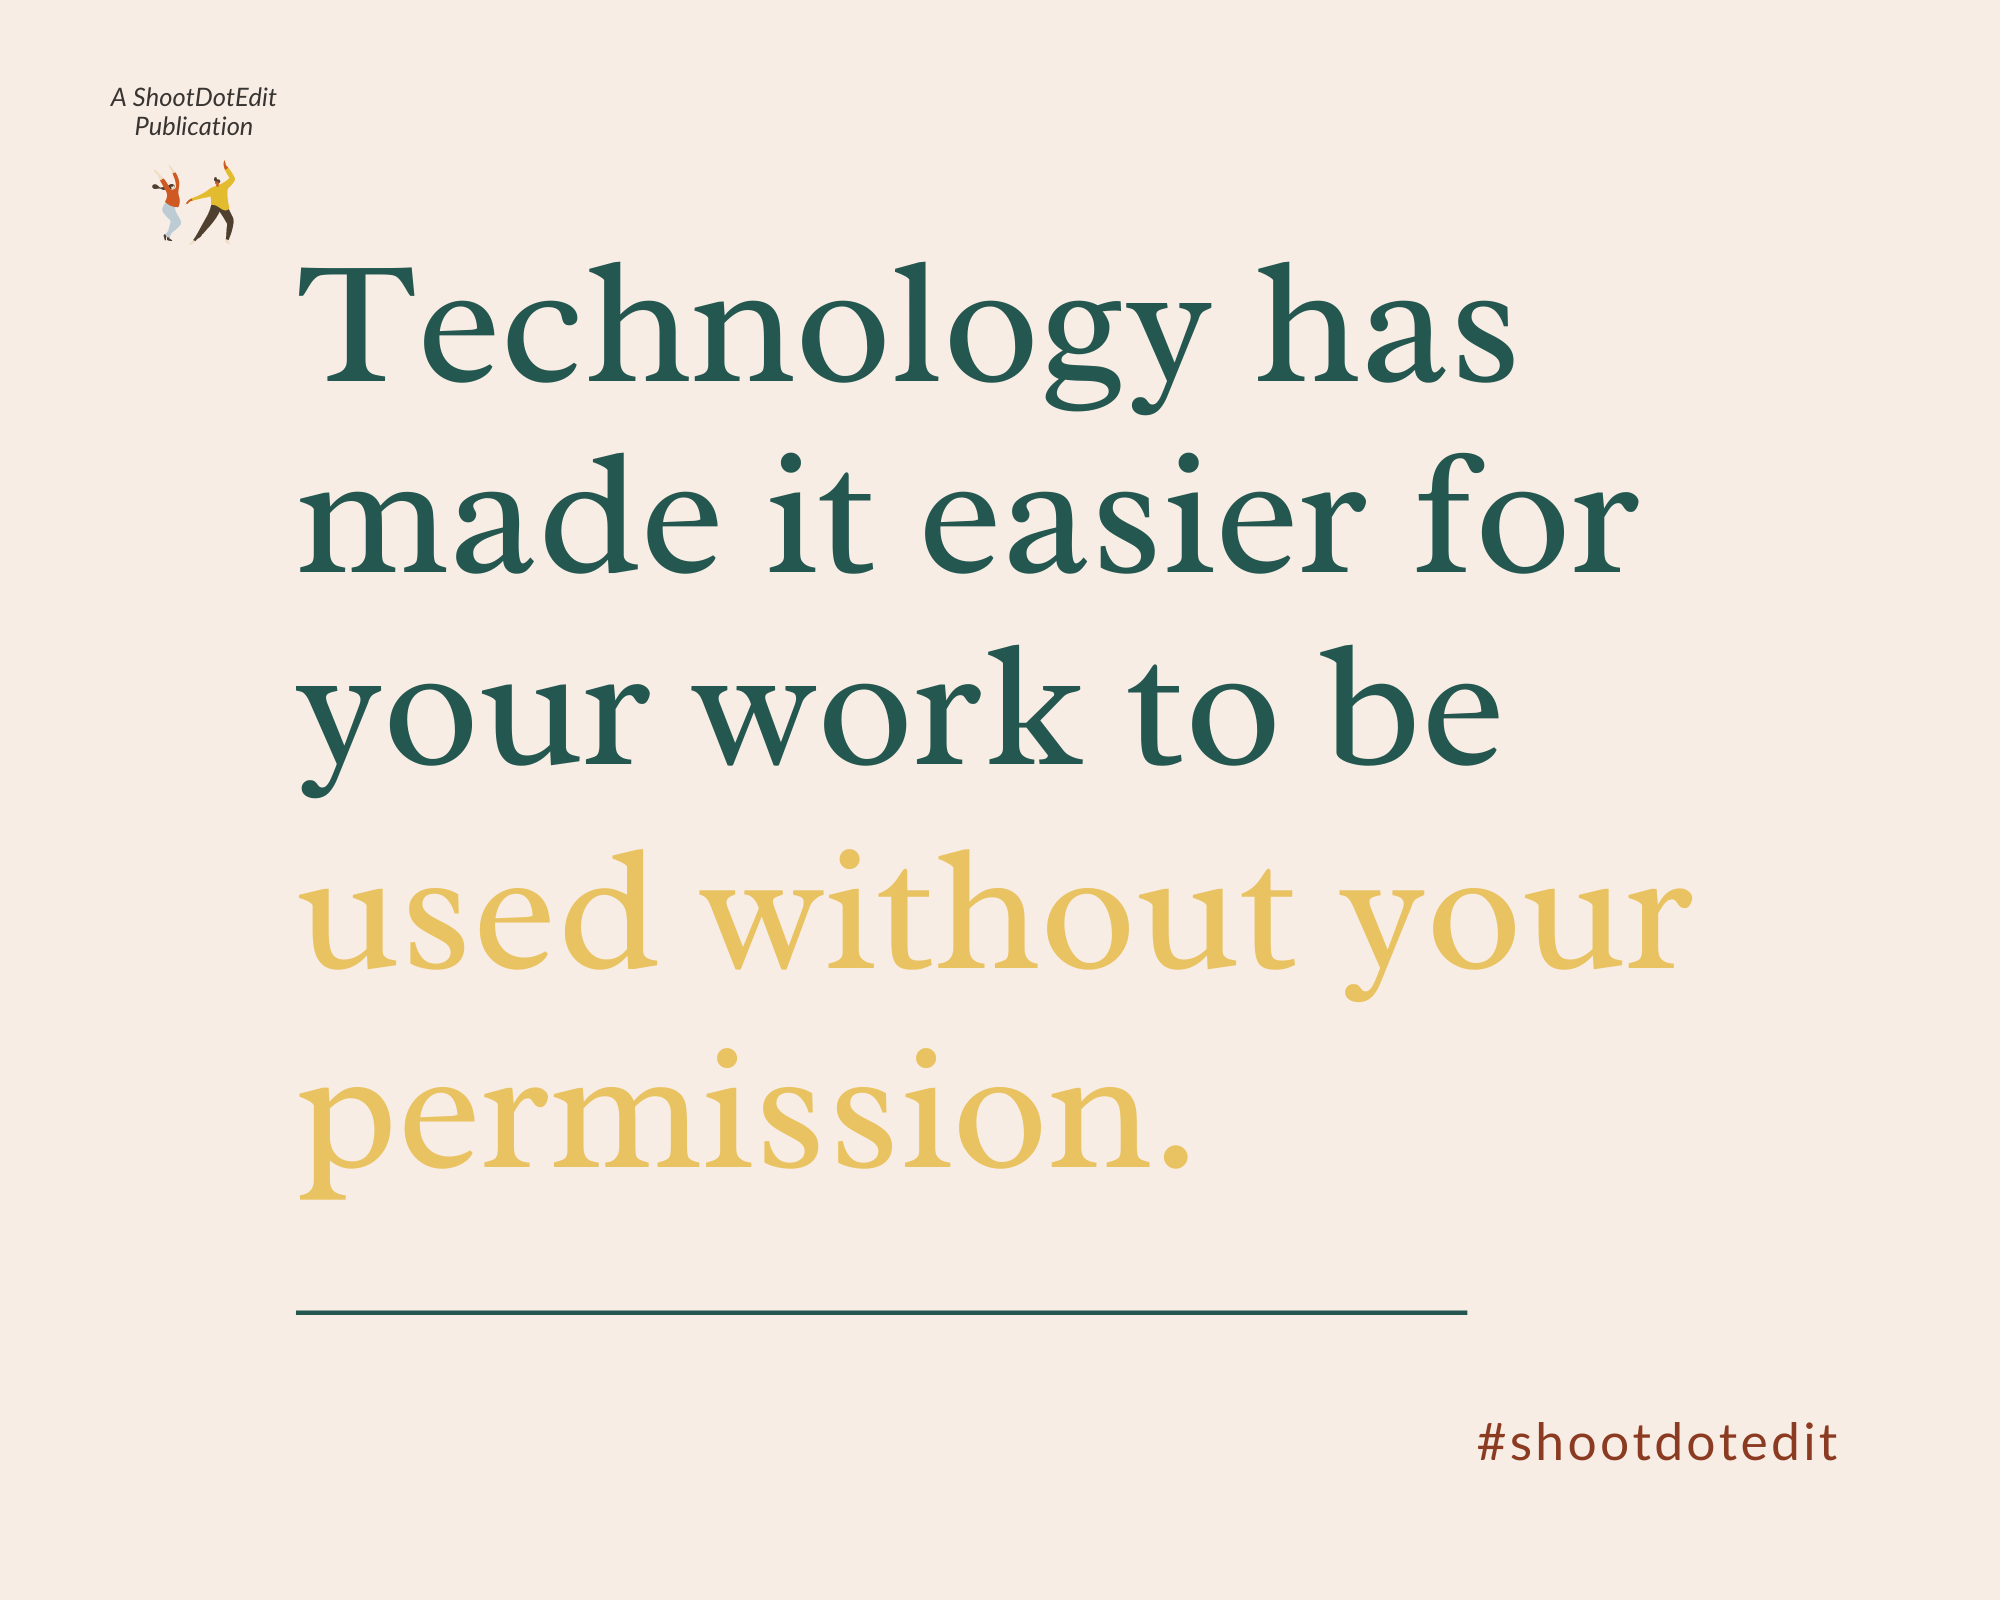 Infographic stating technology has made it easier for your work to be used without your permission